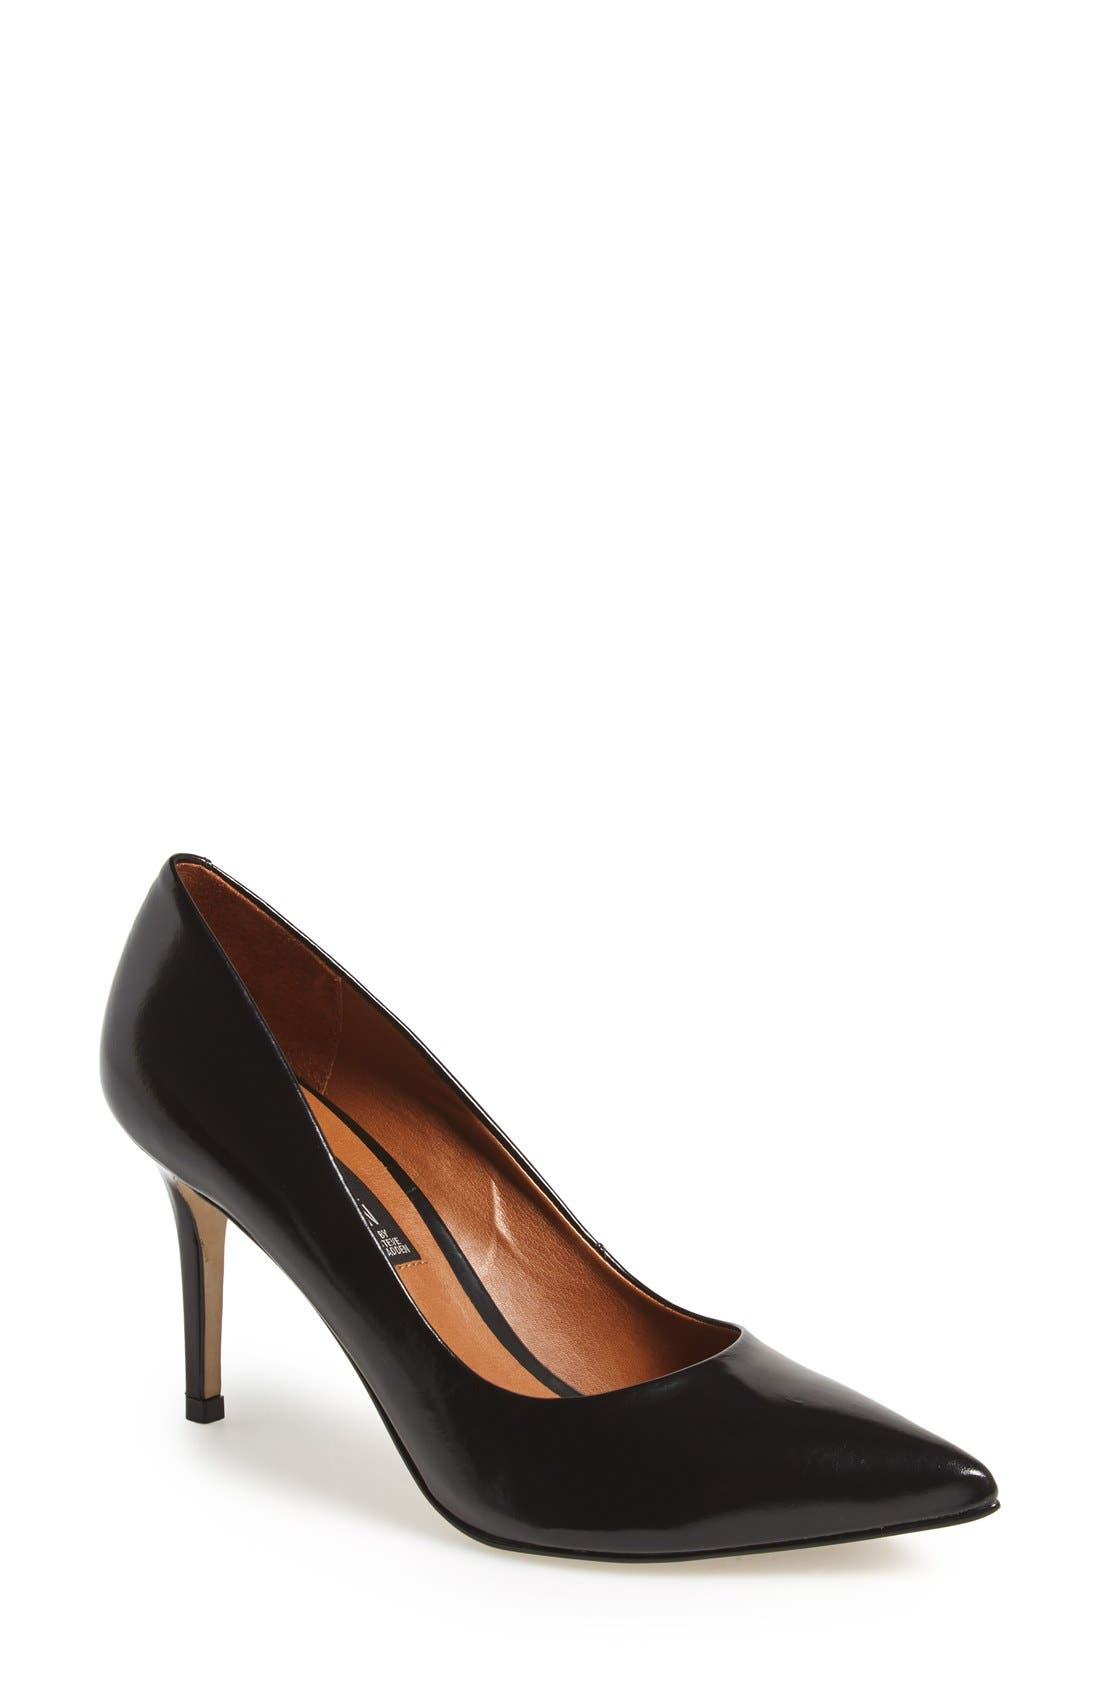 STEVEN BY STEVE MADDEN, 'Shiela' Pointy Toe Pump, Main thumbnail 1, color, 001